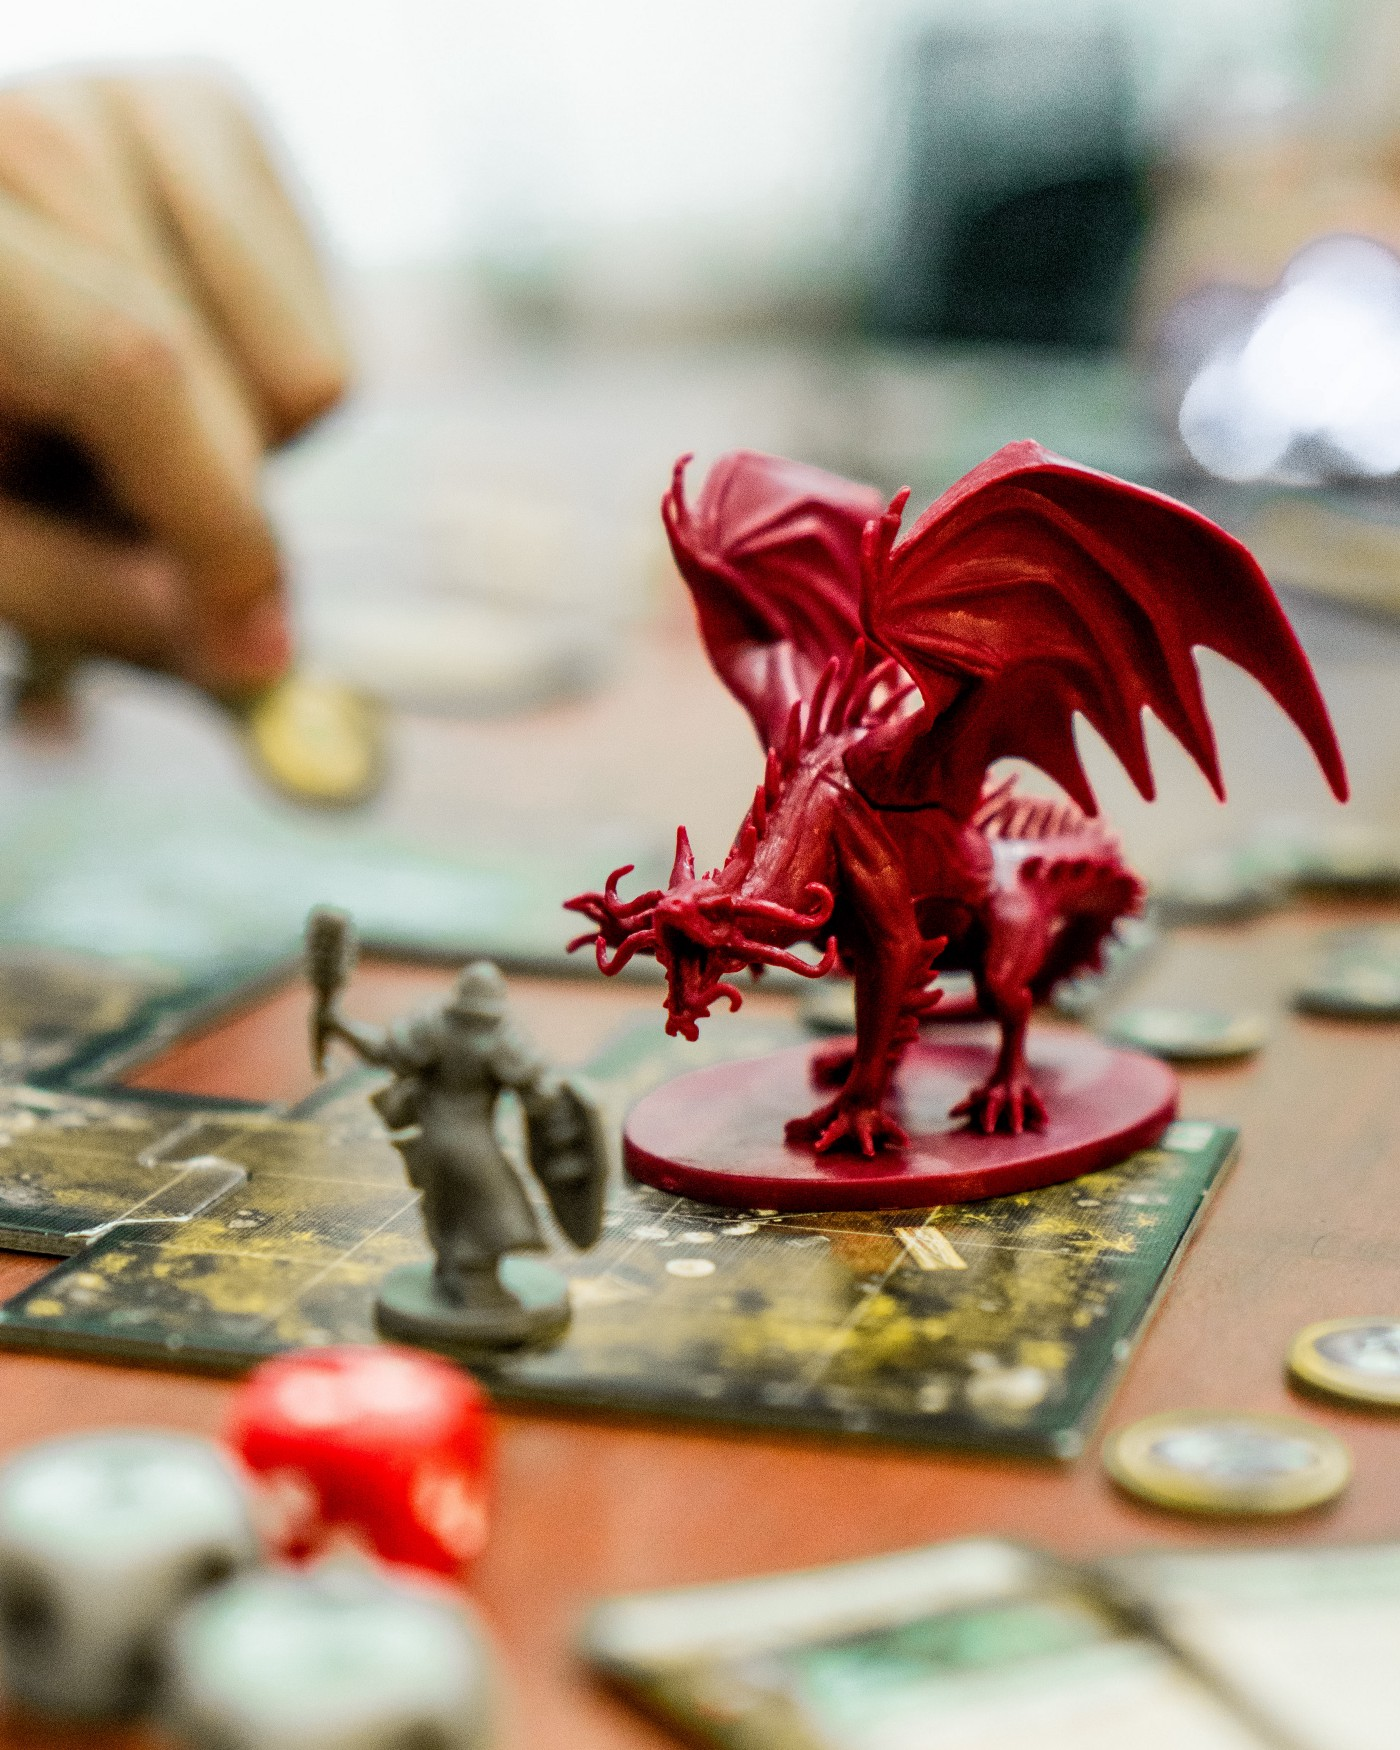 A dragon on a board game NFT article